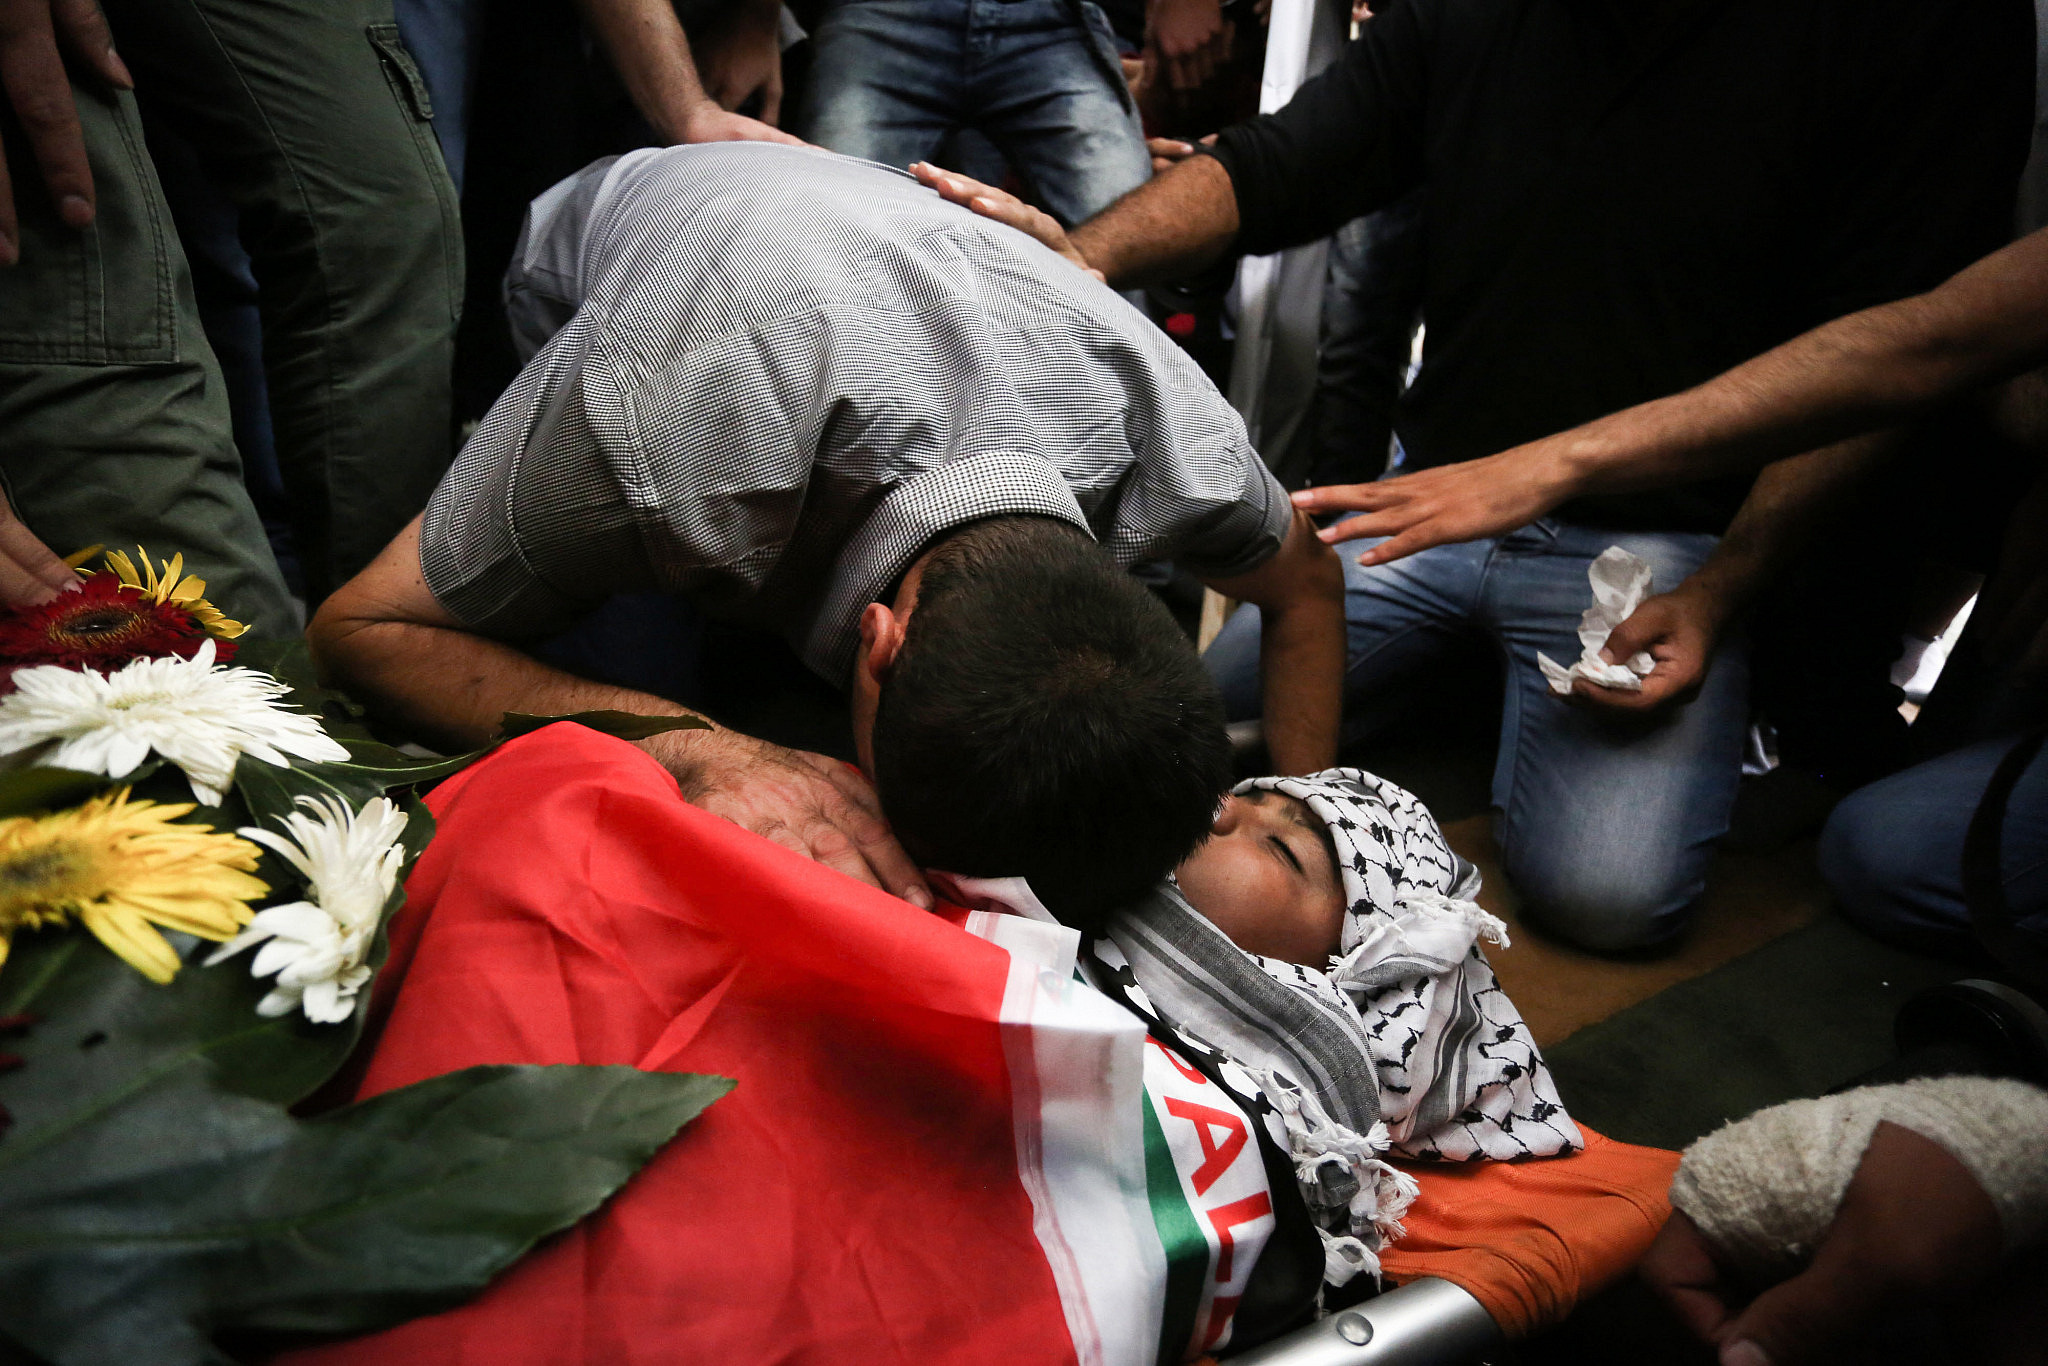 Mourners carry the body of 13-year-old Palestinian boy Ahmed Sharaka, who was killed by Israeli troops after being hit in the head by a plastic-coated metal bullet, in Jalazoun refugee camp near Ramallah, October 12, 2015. (Flash90)